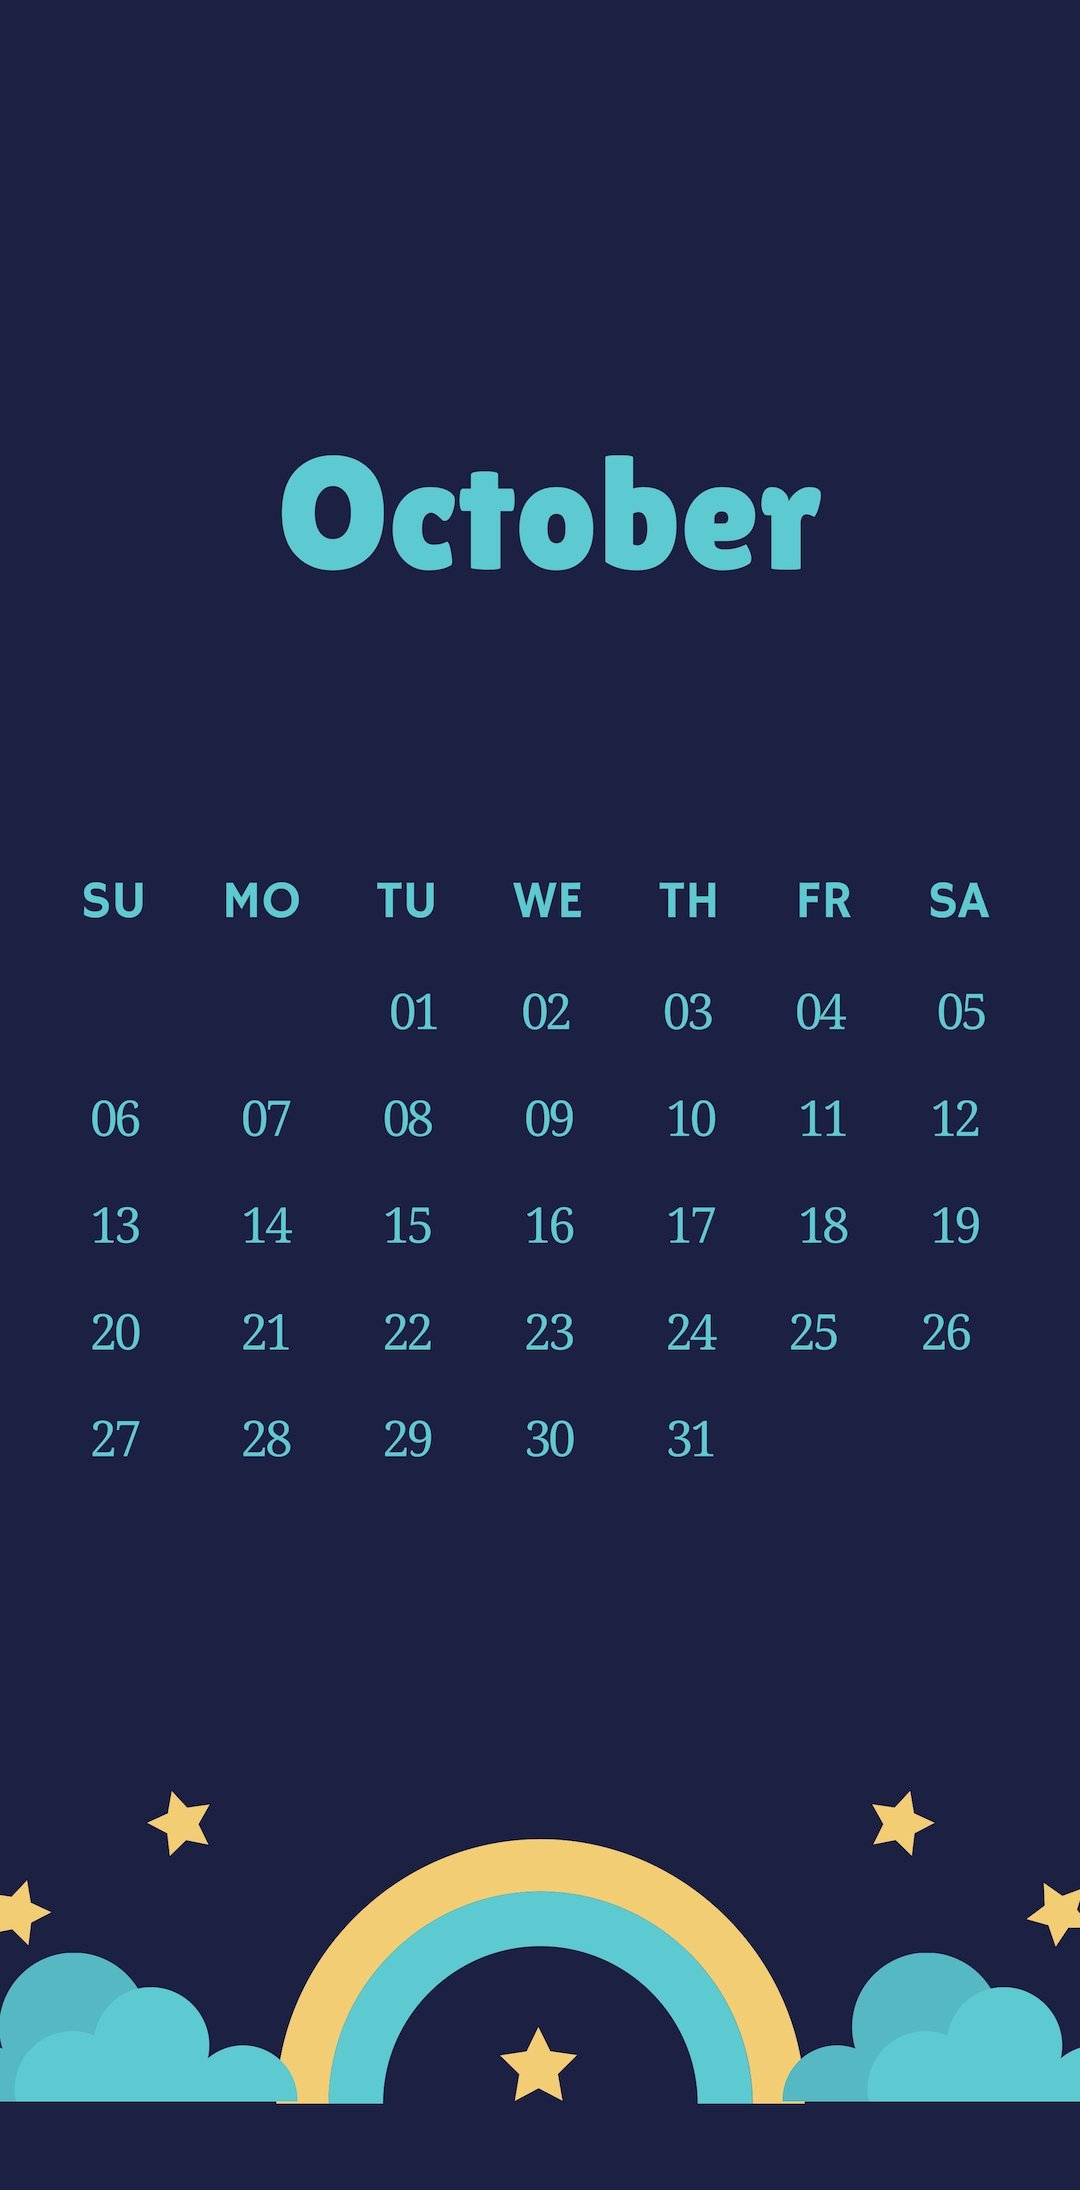 October 2019 iPhone Cute Calendar Wallpaper